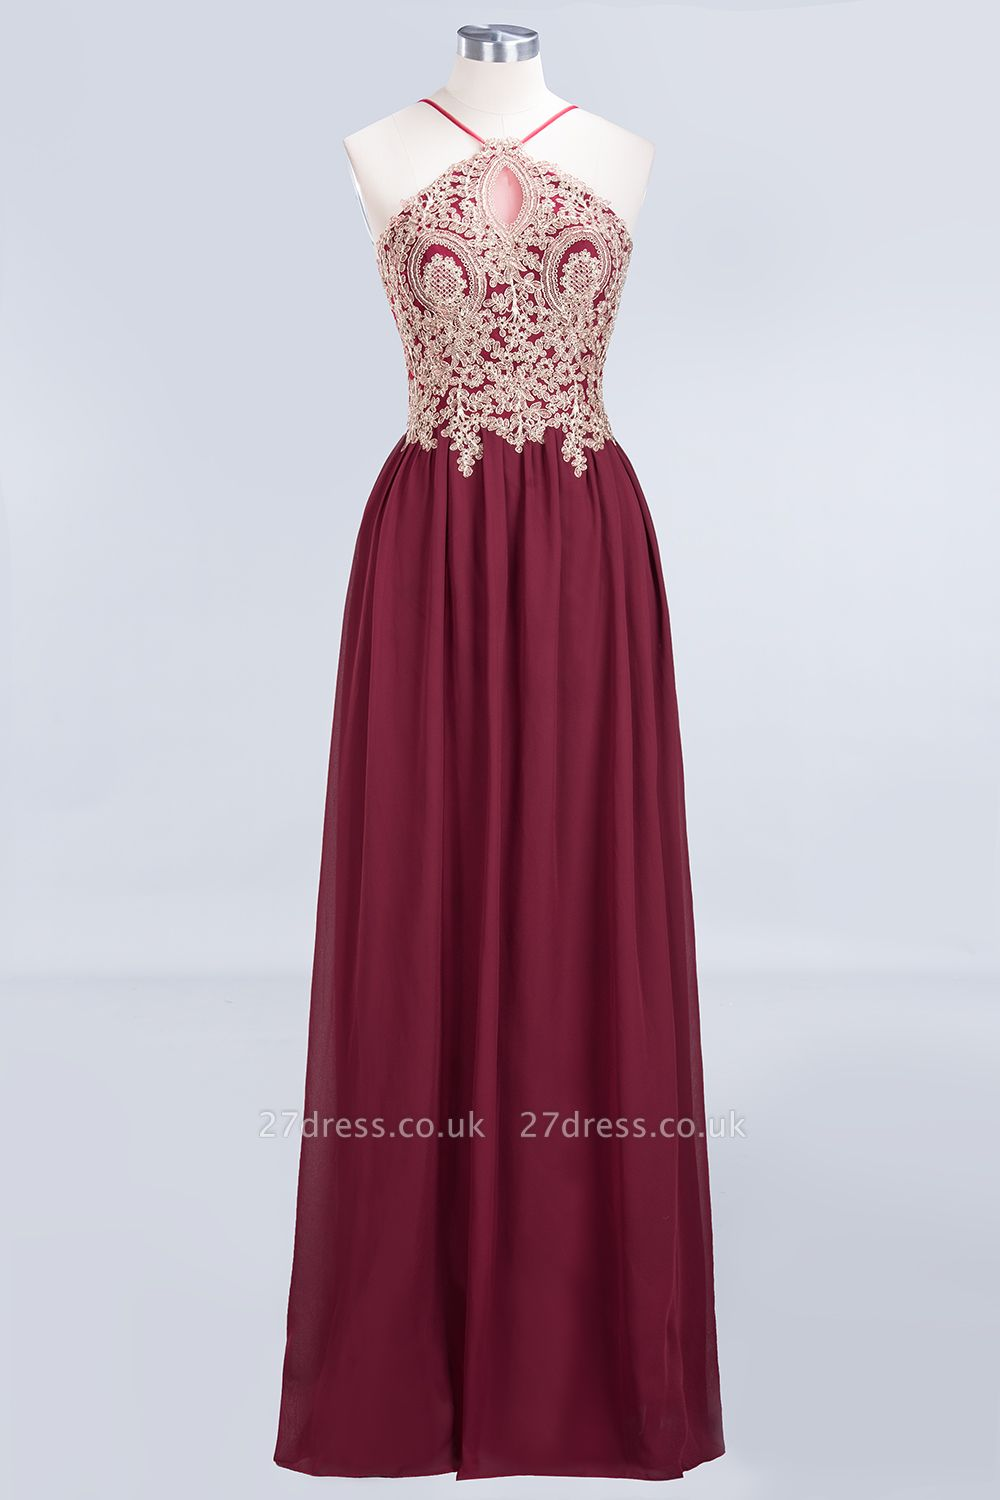 Sexy A-line Flowy Spaghetti-Straps Sleeveless Backless Floor-Length Bridesmaid Dress UK UK with Appliques